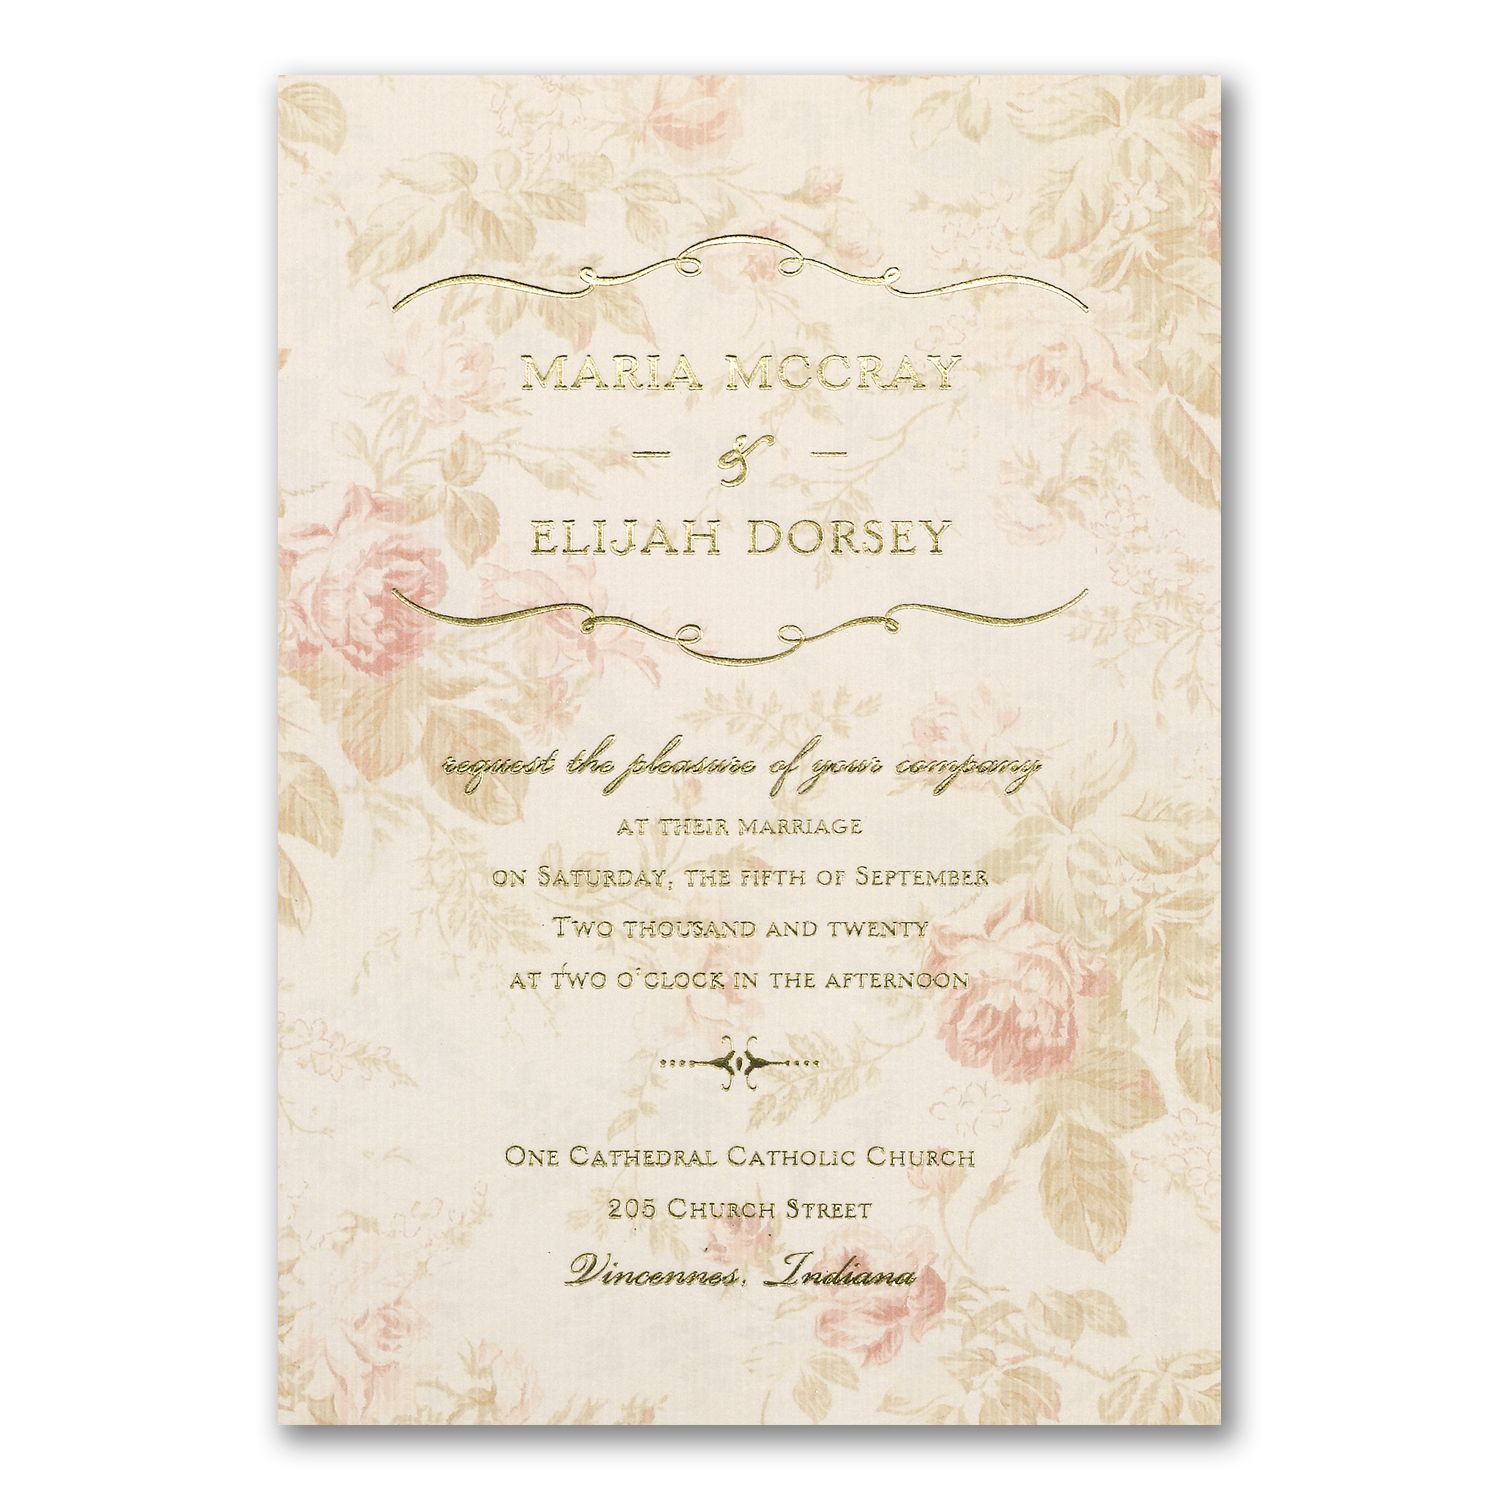 Wrapped Up In Vintage Invitation Affordable Wedding Invitations Beach Wedding Invitations Discount Wedding Invitations